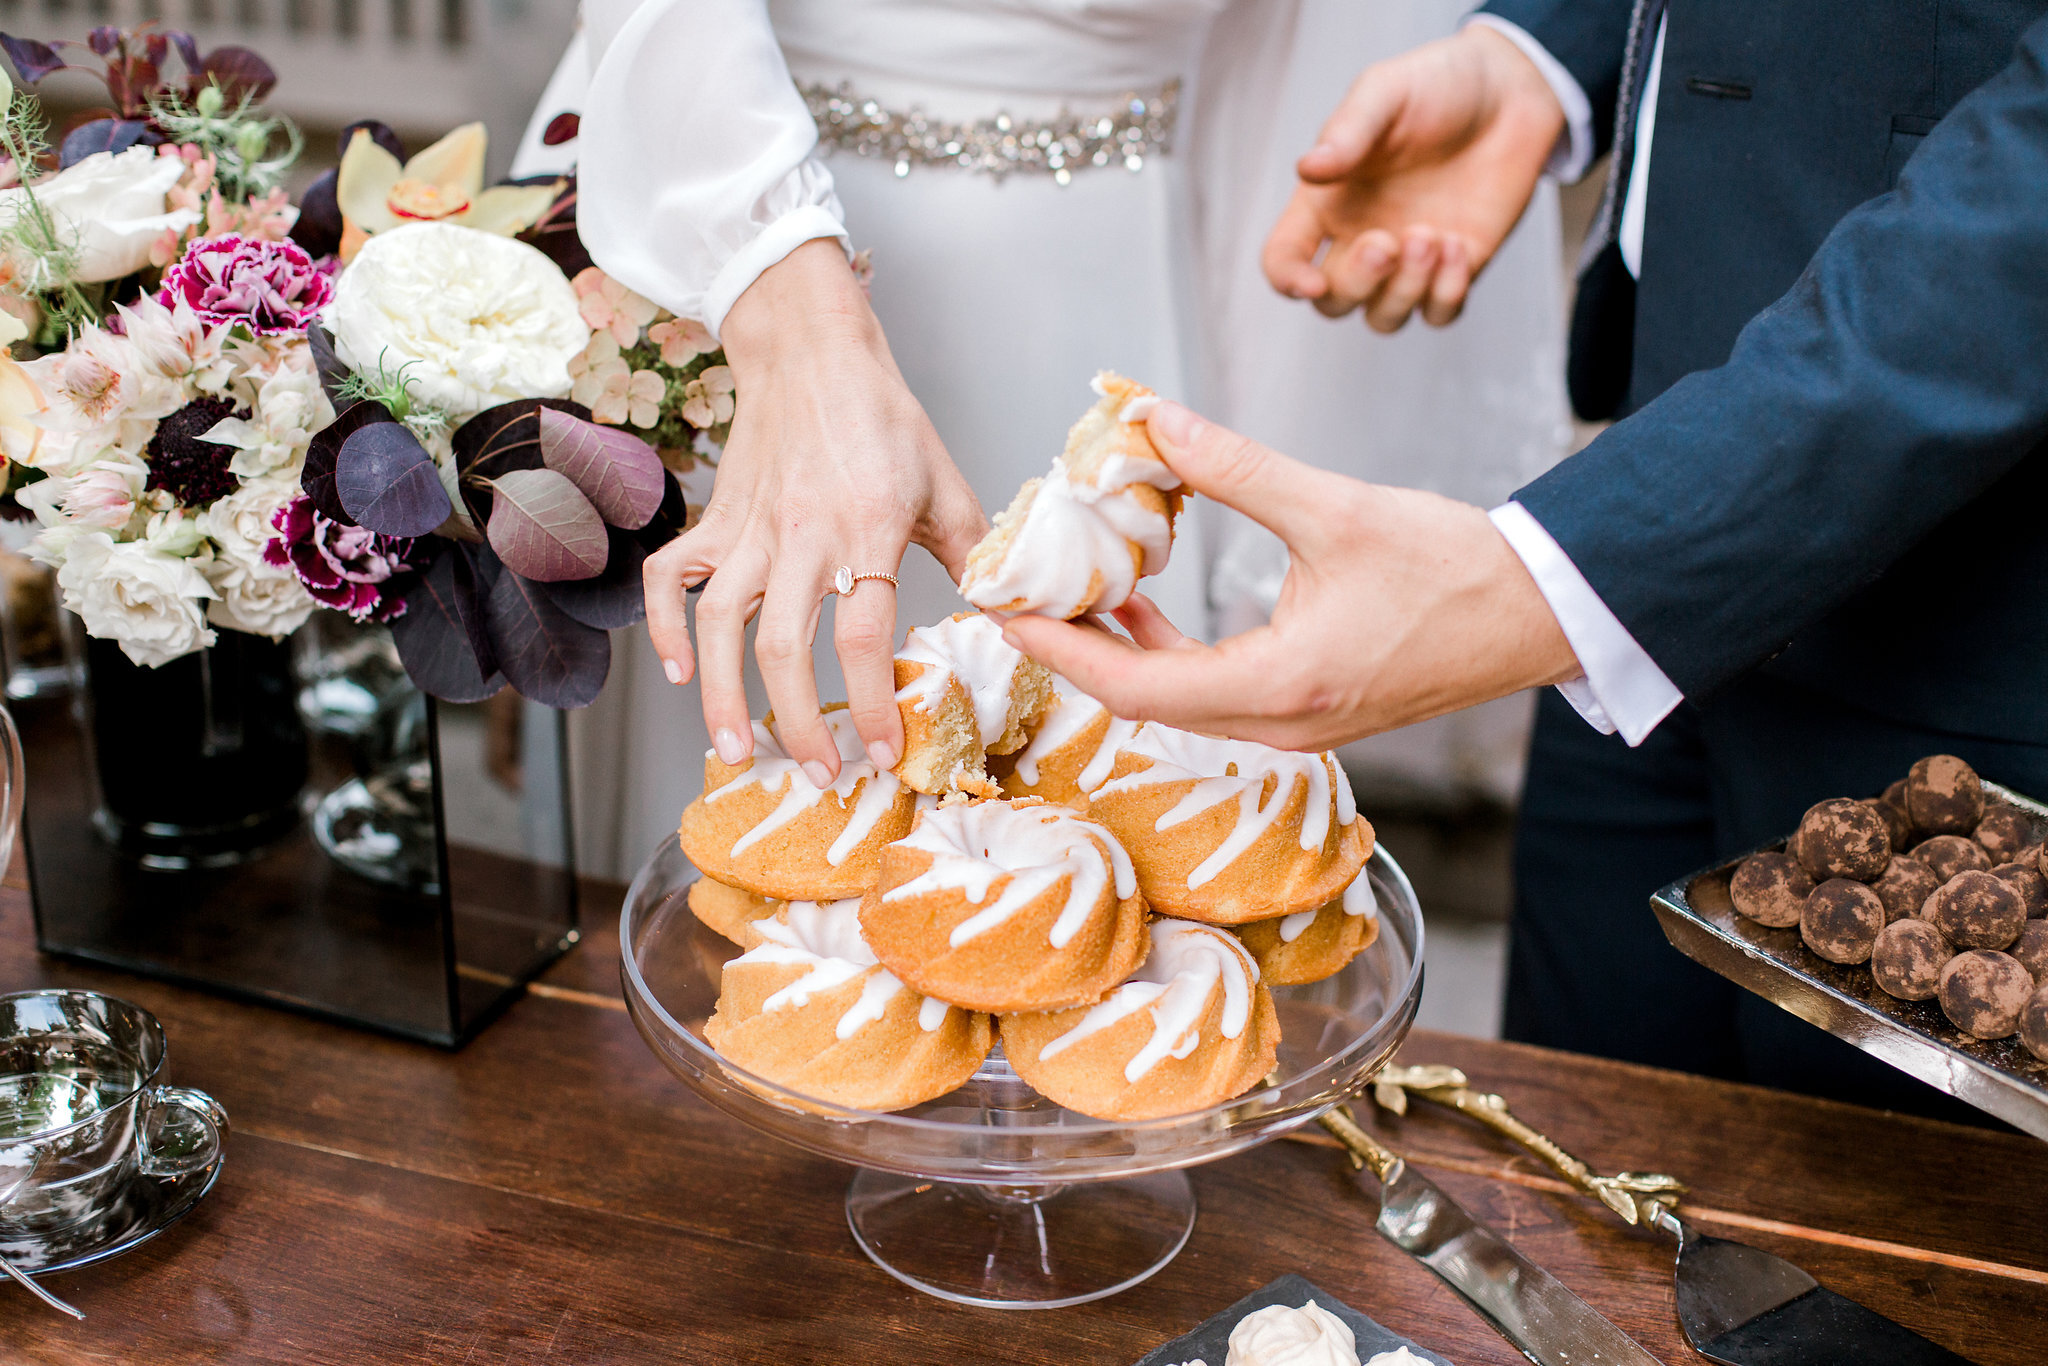 why hire a wedding planner? - From timing your walk down the aisle to coordinating your vendors, there is a lot to manage on your wedding day.Planners make it so you and your family get to enjoy your day and focus on making memories instead of paying attention to all the moving parts.